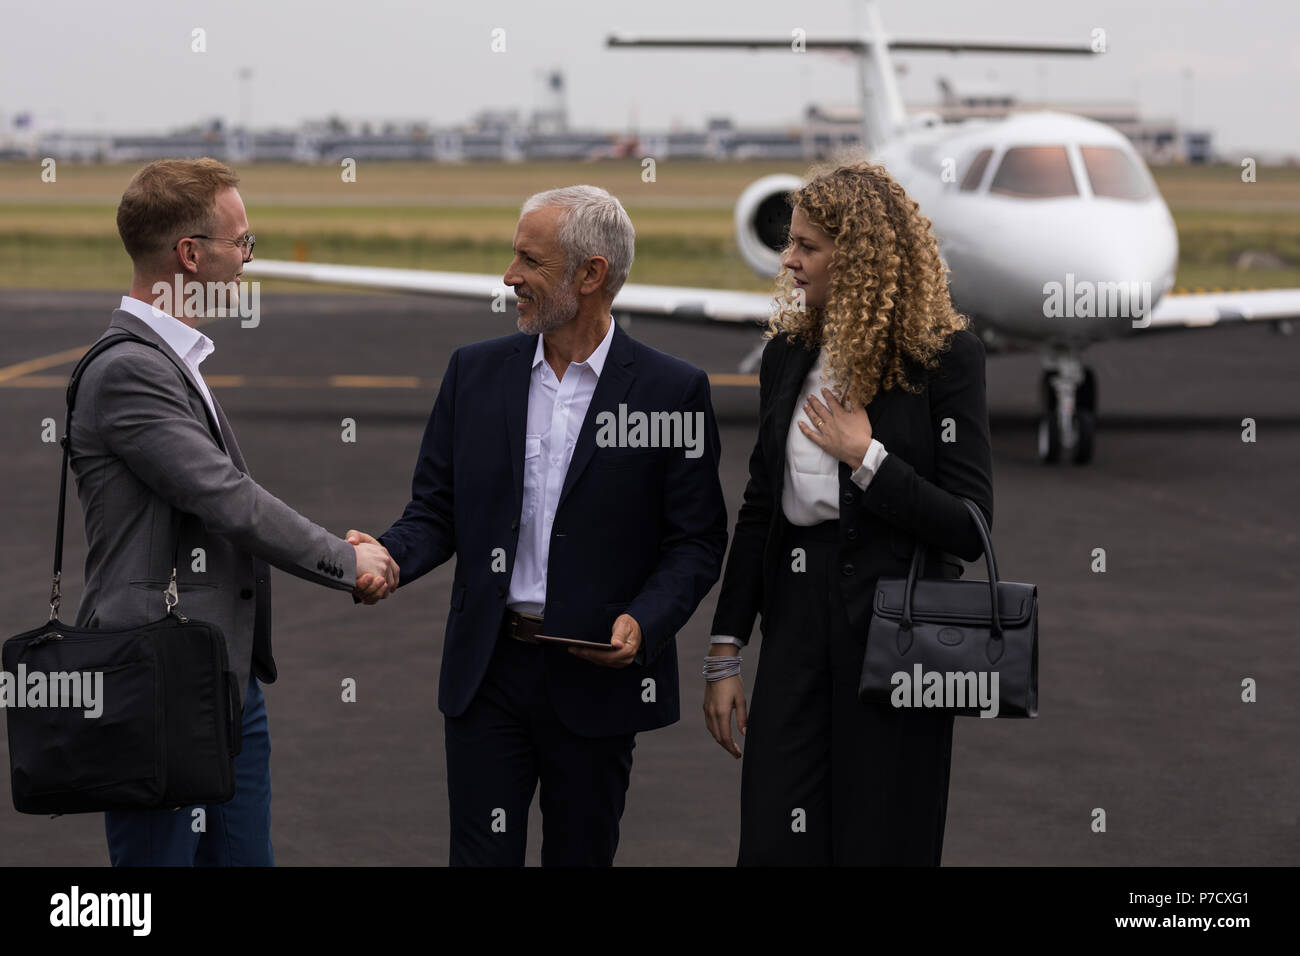 Businesspeople shaking hands with each other - Stock Image